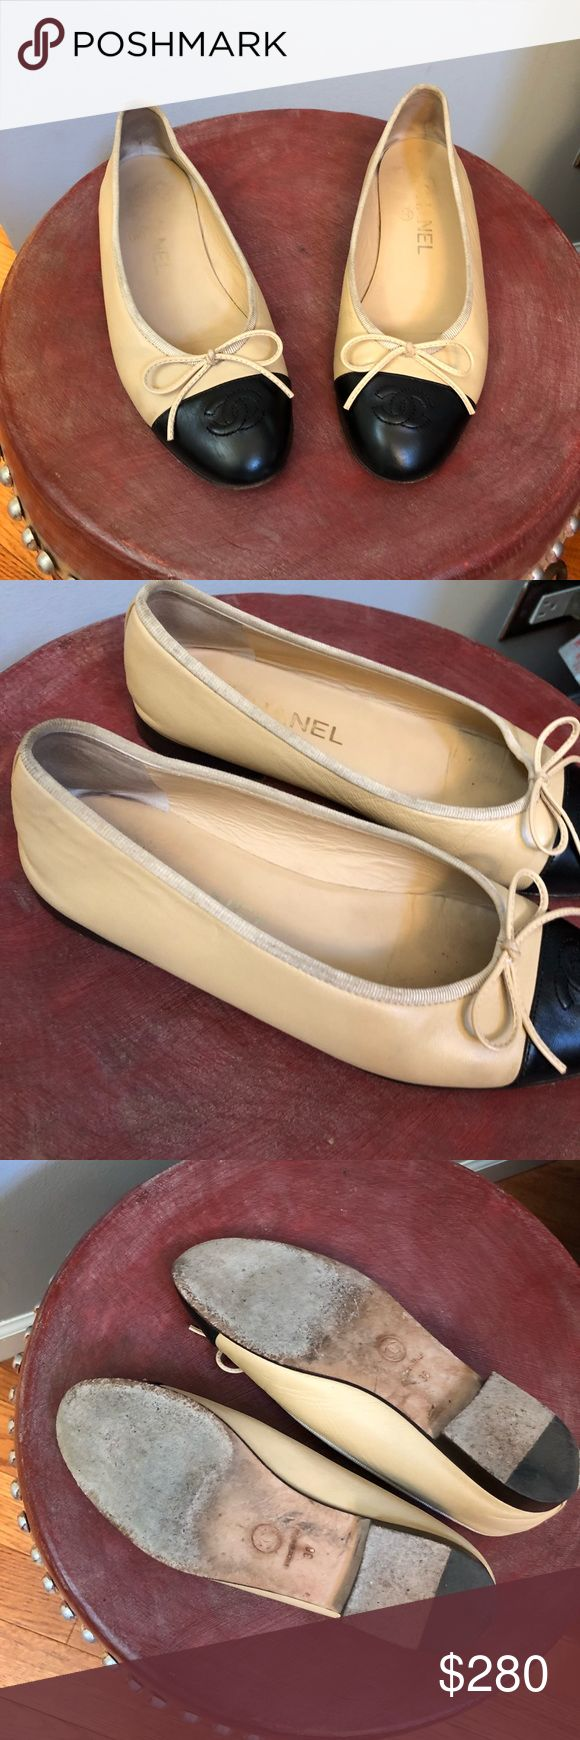 Chanel flats authentic !!!!! In pre owned condition .. needs some cleaning on fabric part .. has toe scratch very minor as seen on pic.. CHANEL Shoes Flats & Loafers